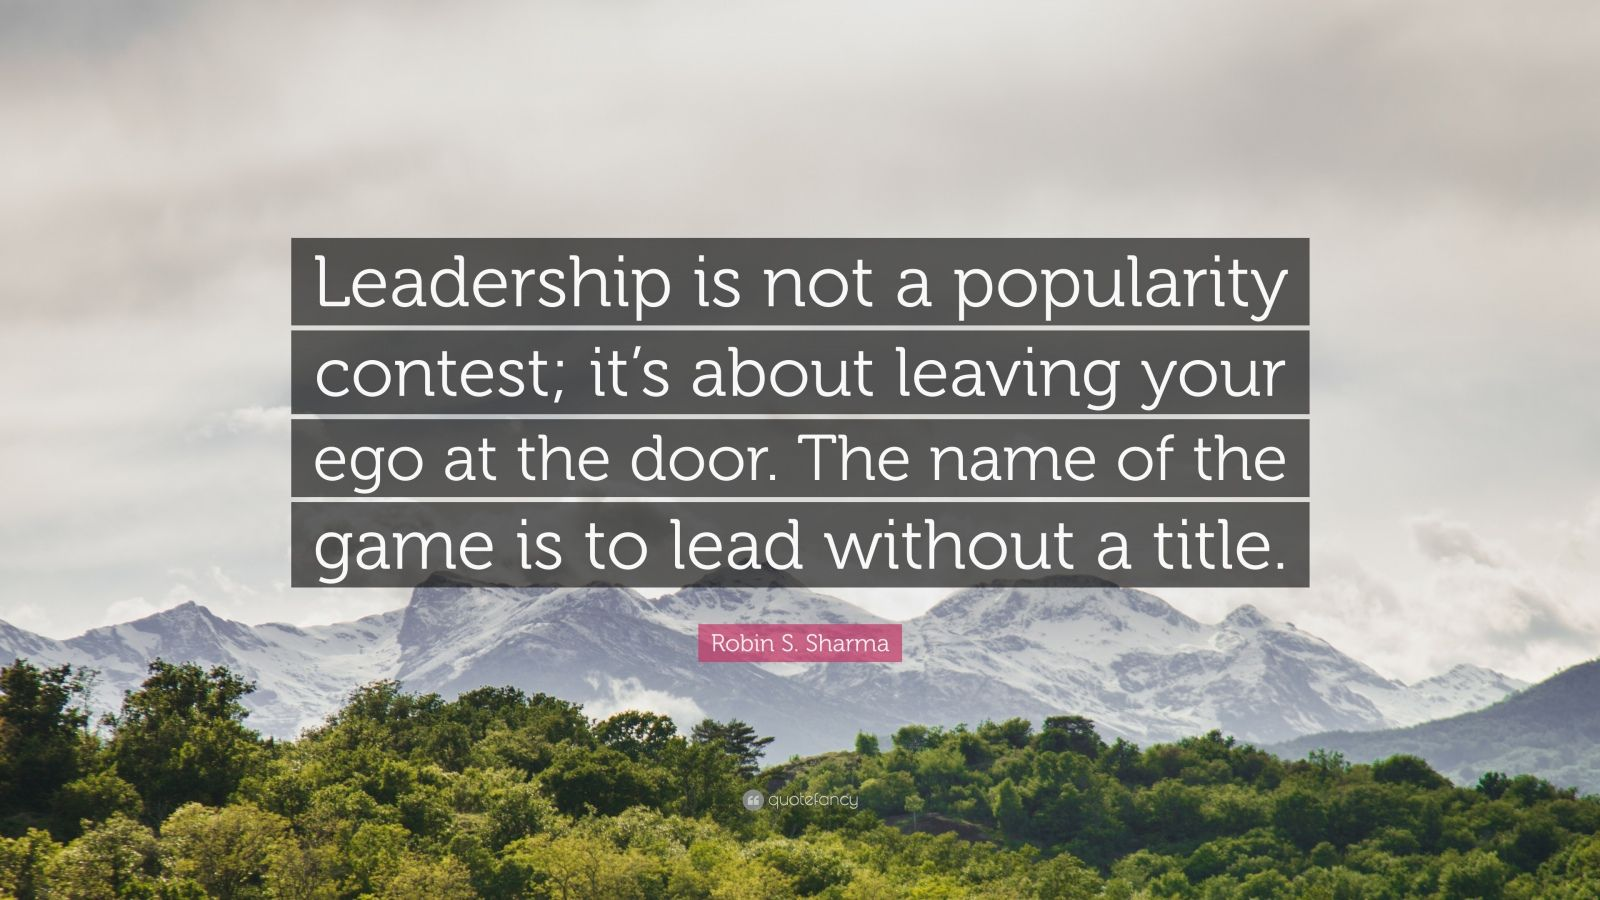 """Robin S. Sharma Quote: """"Leadership is not a popularity contest; it's about leaving your ego at the door. The name of the game is to lead without a title."""""""